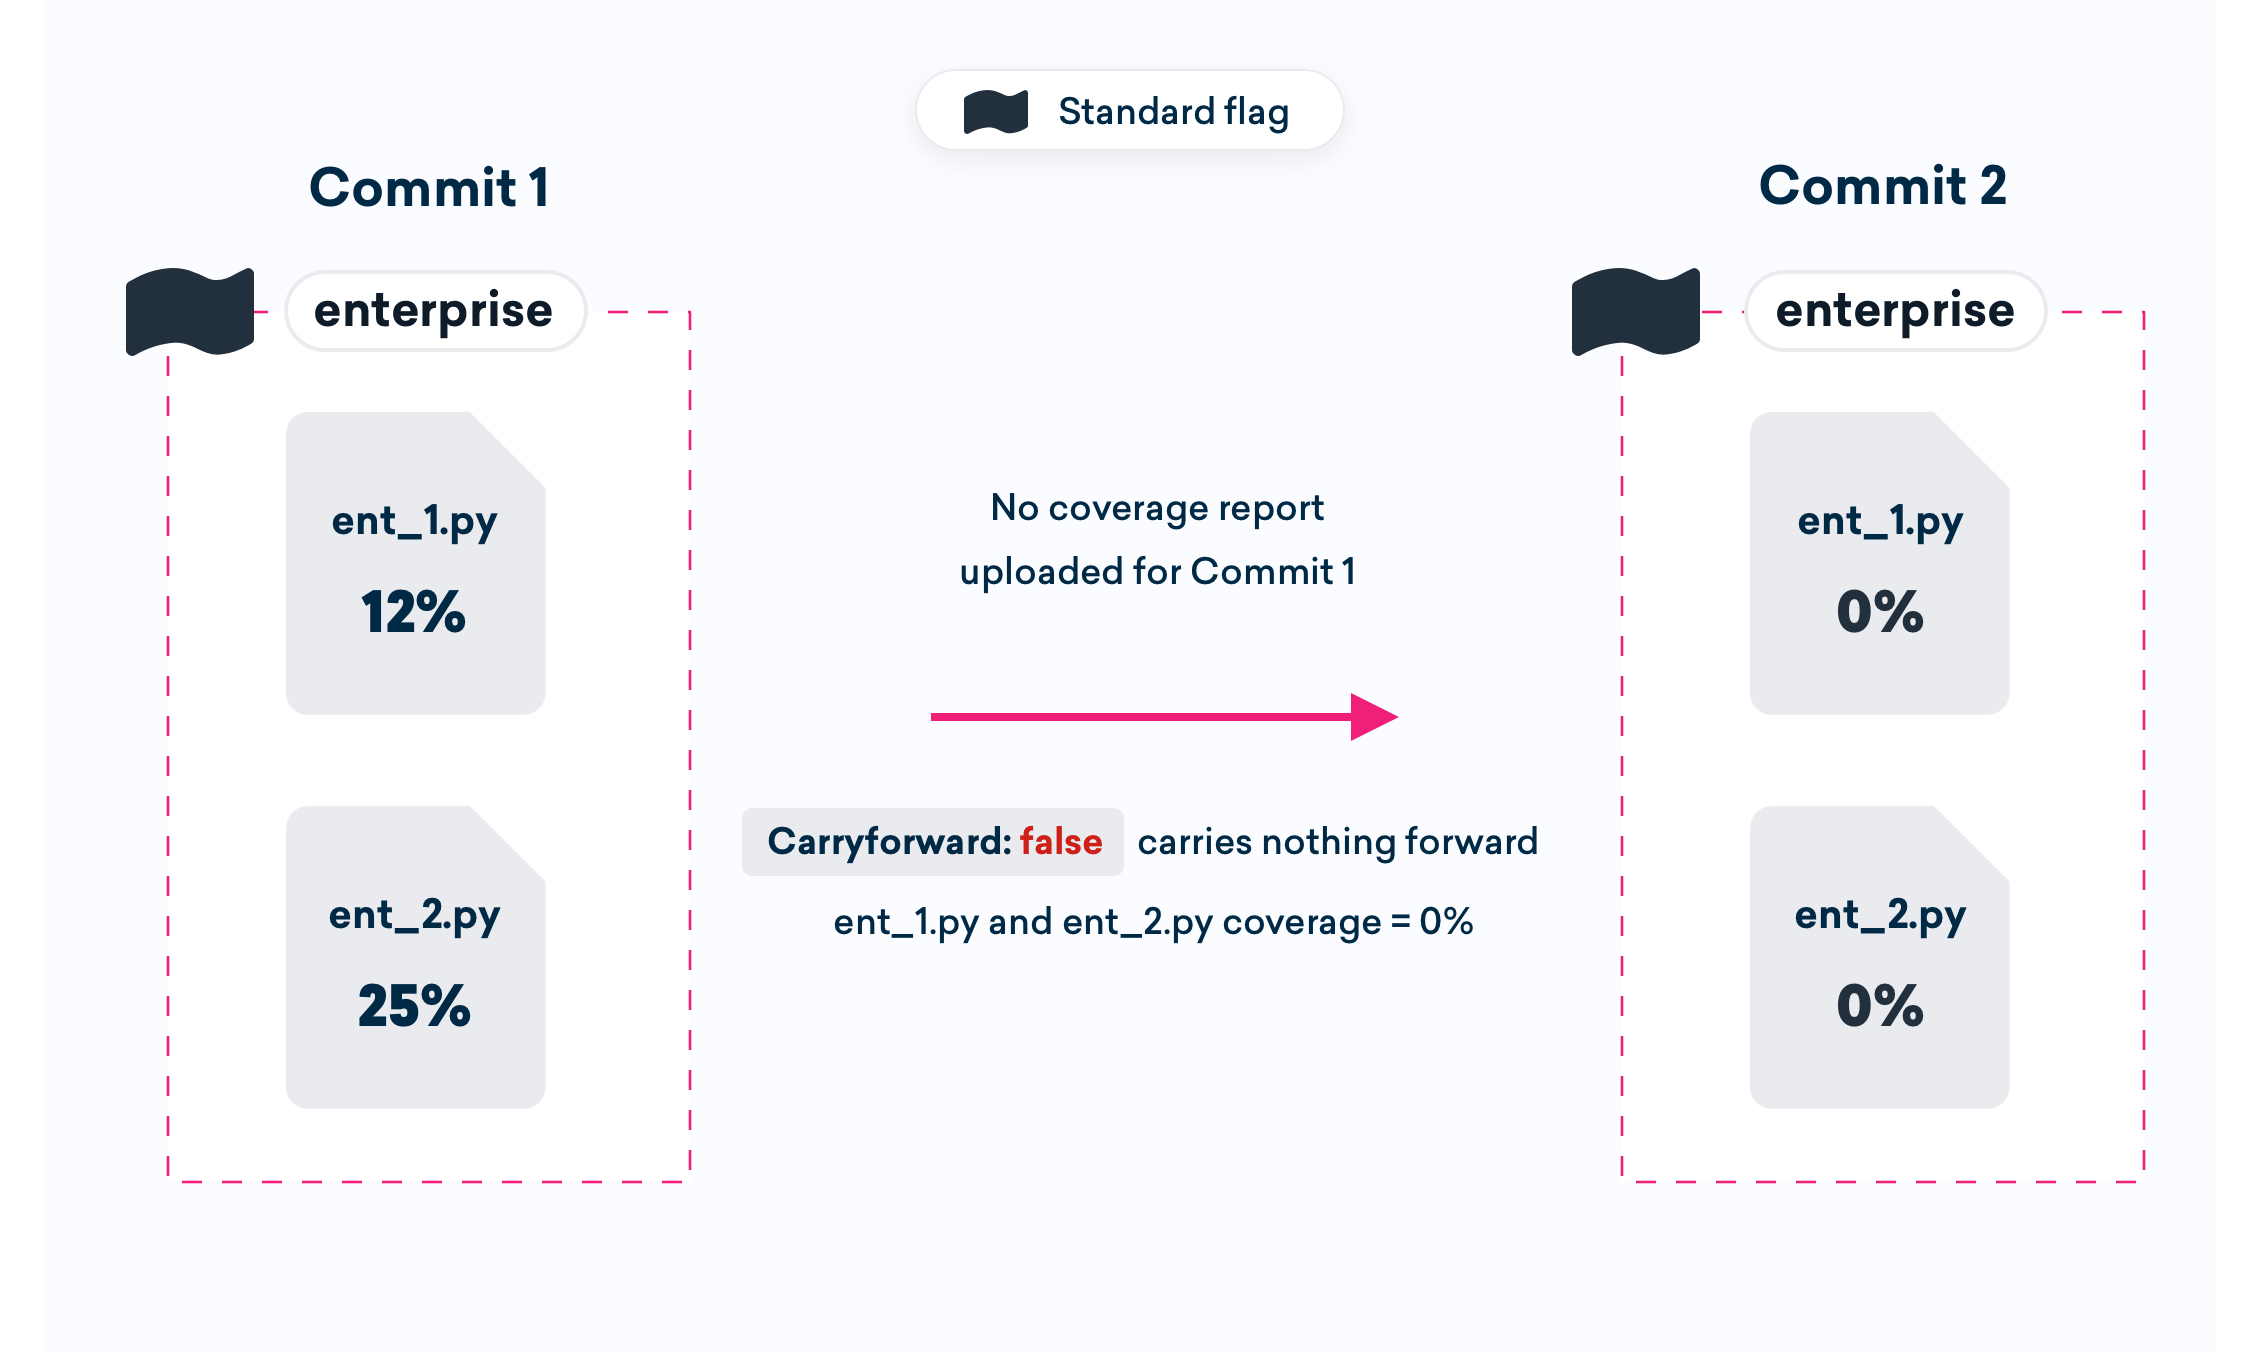 An example of a commit with no coverage report, and no carryforward flags.